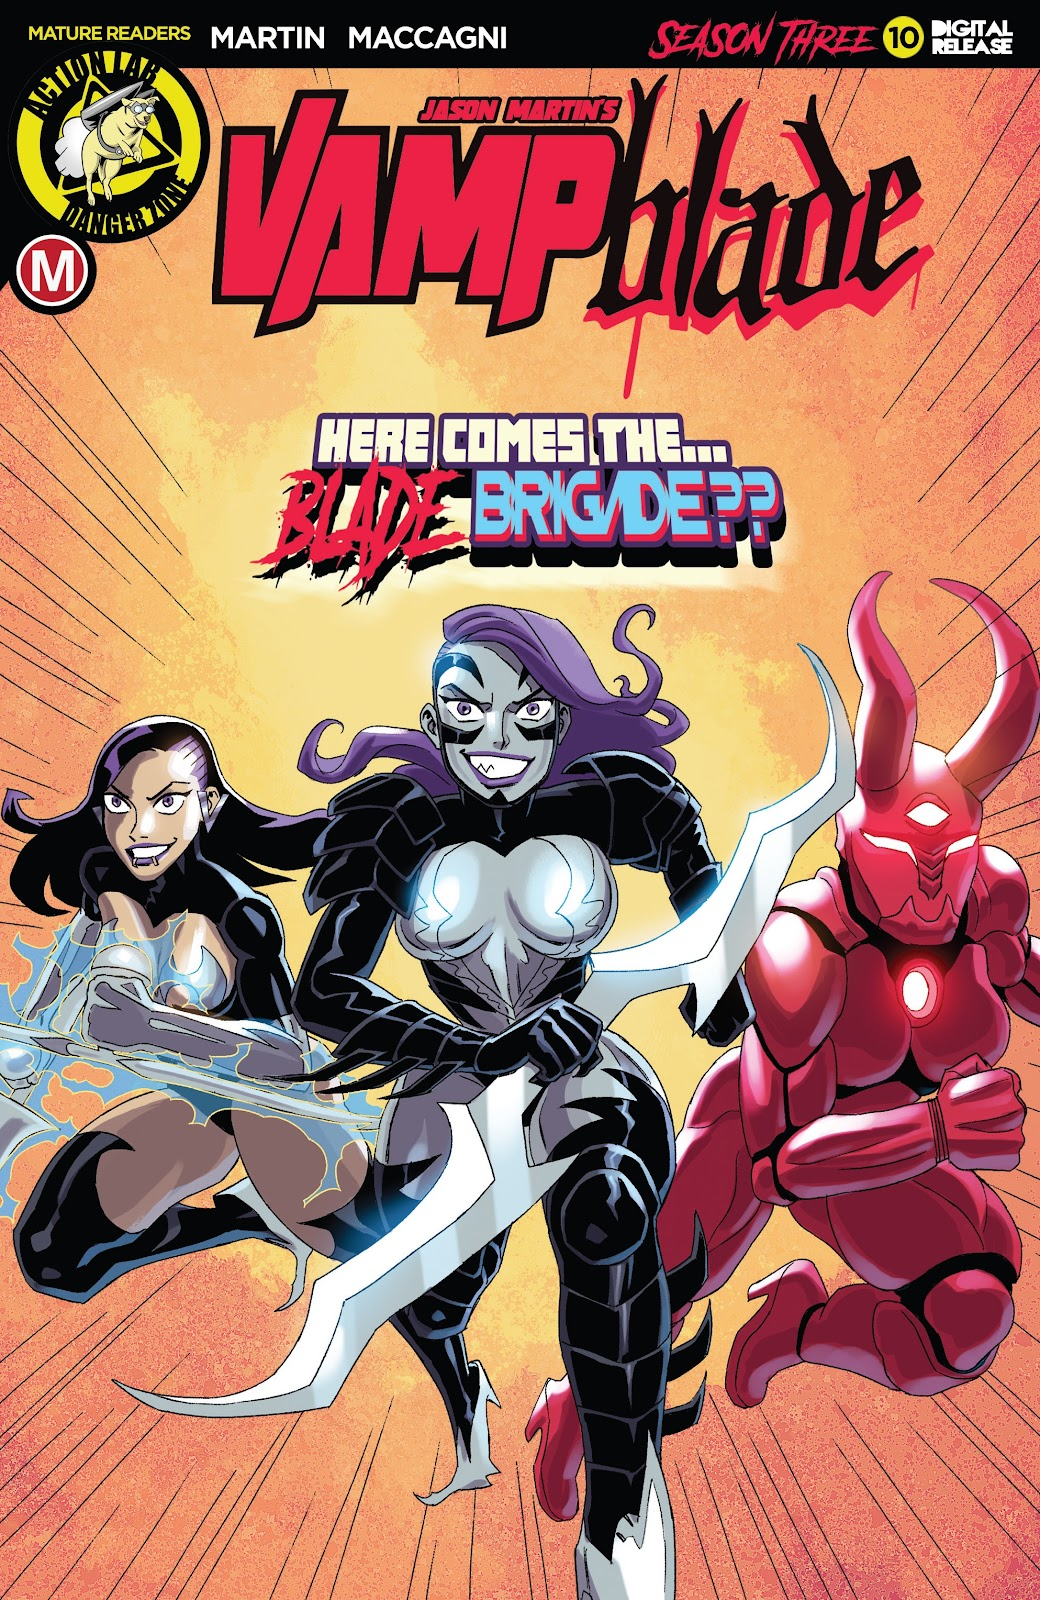 Read online Vampblade Season 3 comic -  Issue #10 - 1